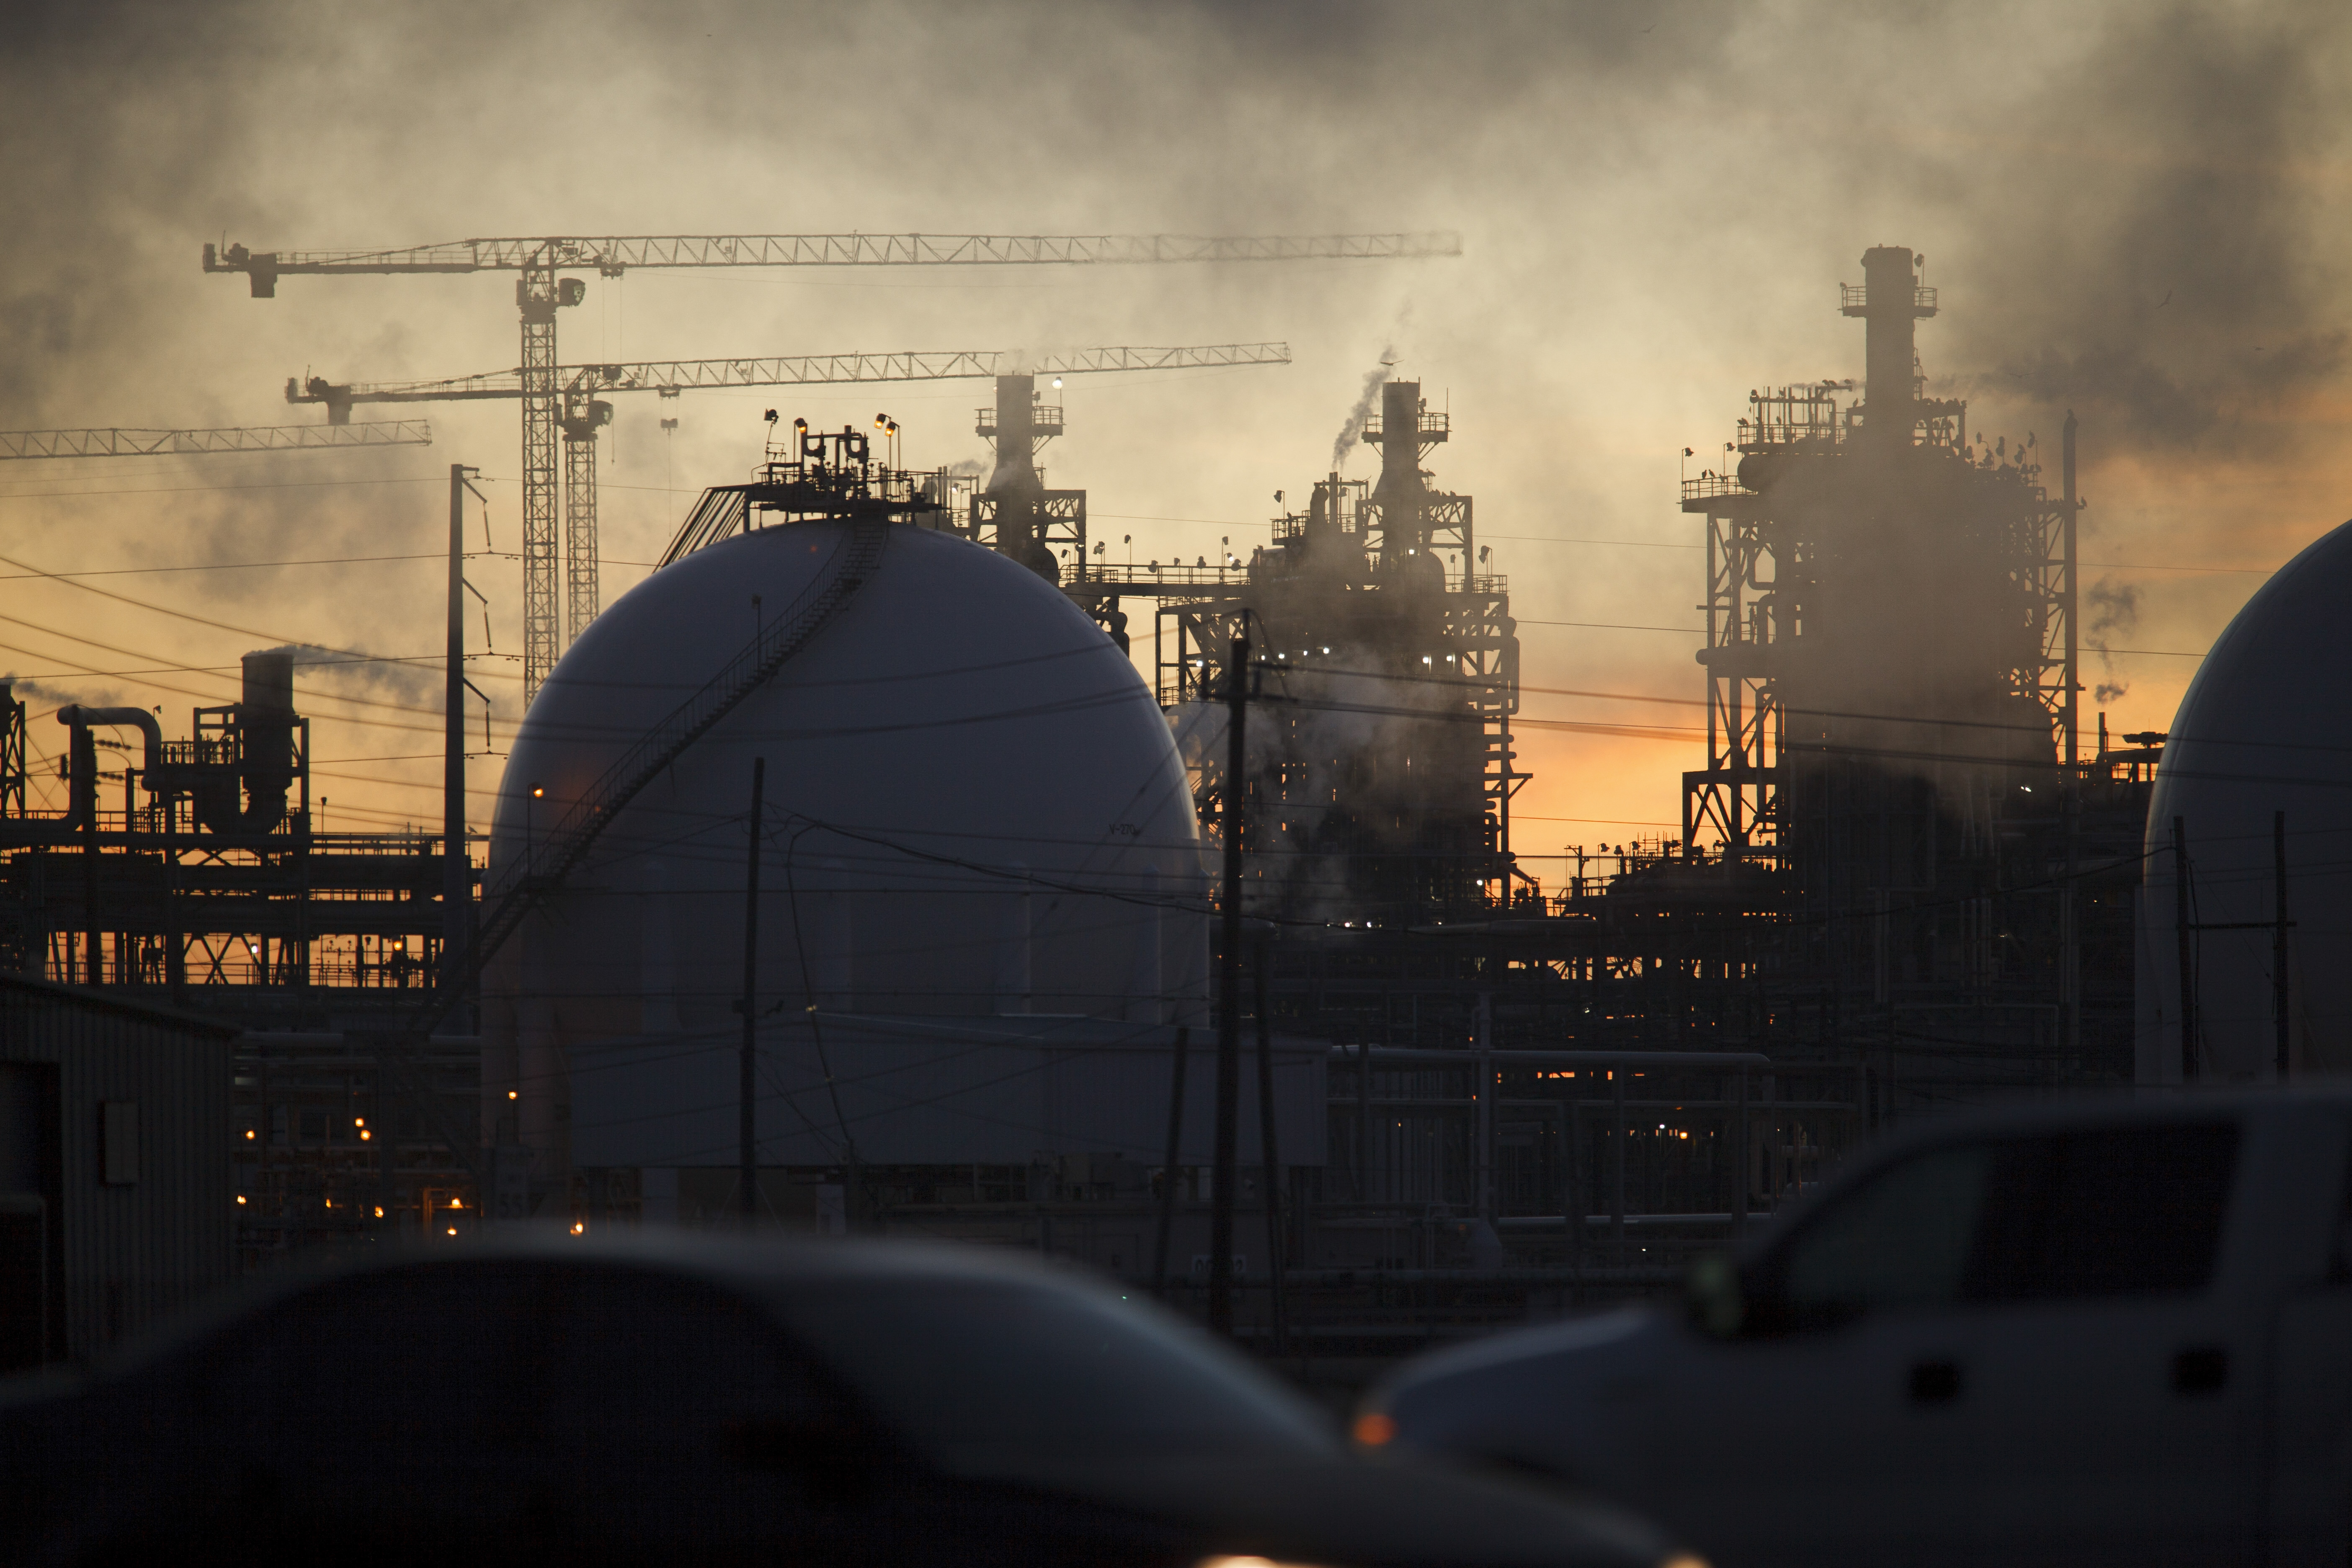 Dow Chemical – which owns this Oyster Creek, Texas, refinery – and DuPont have more than three centuries of history between them.